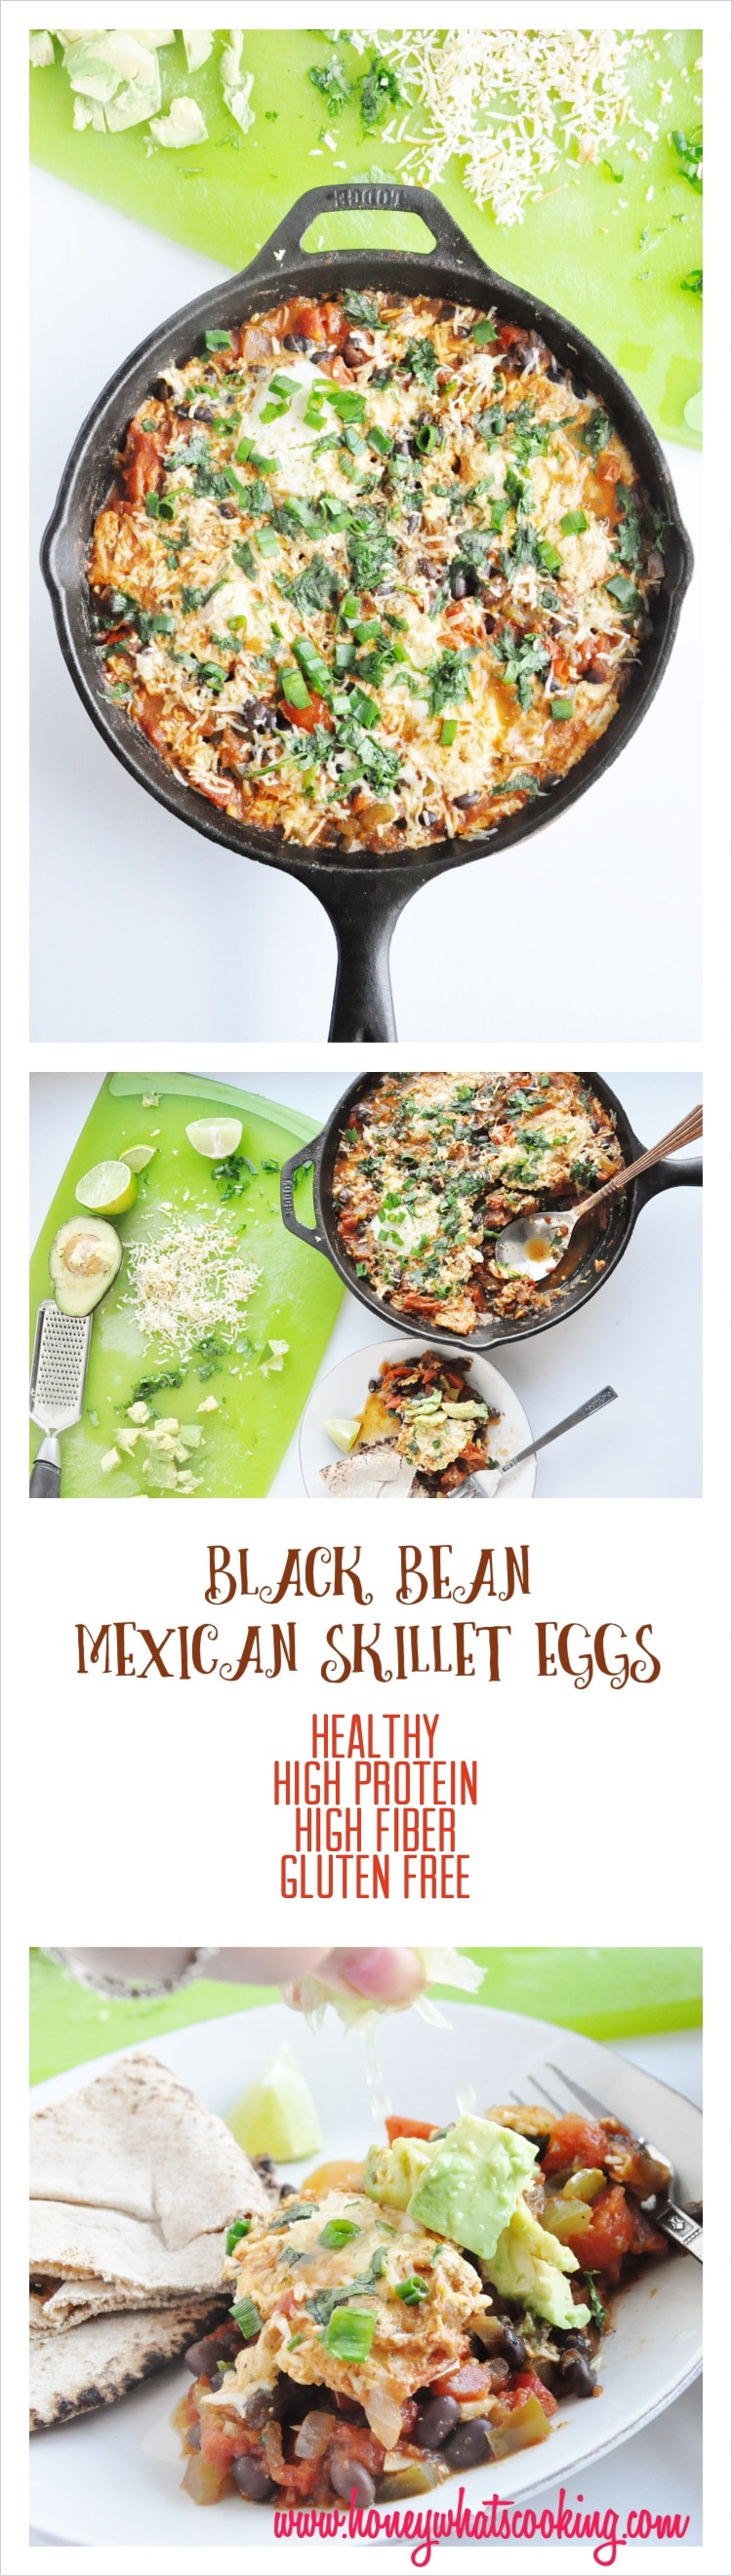 Black Bean Mexican Skillet Eggs pin